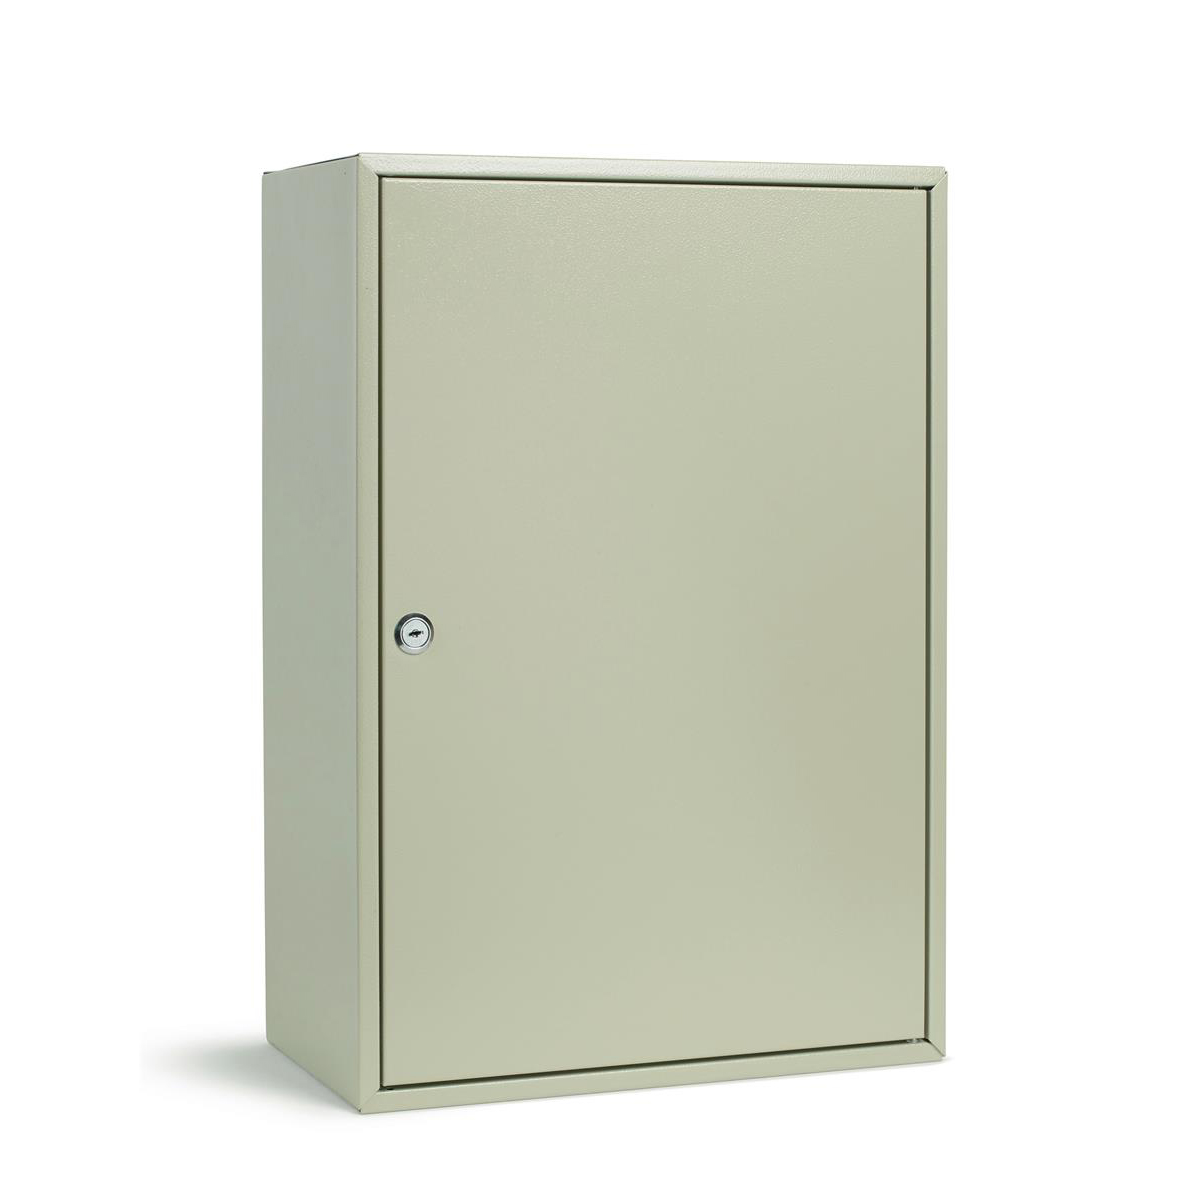 Key Cabinets Key Cabinet Steel Lockable With Wall Fixings Holds 300 Keys Grey